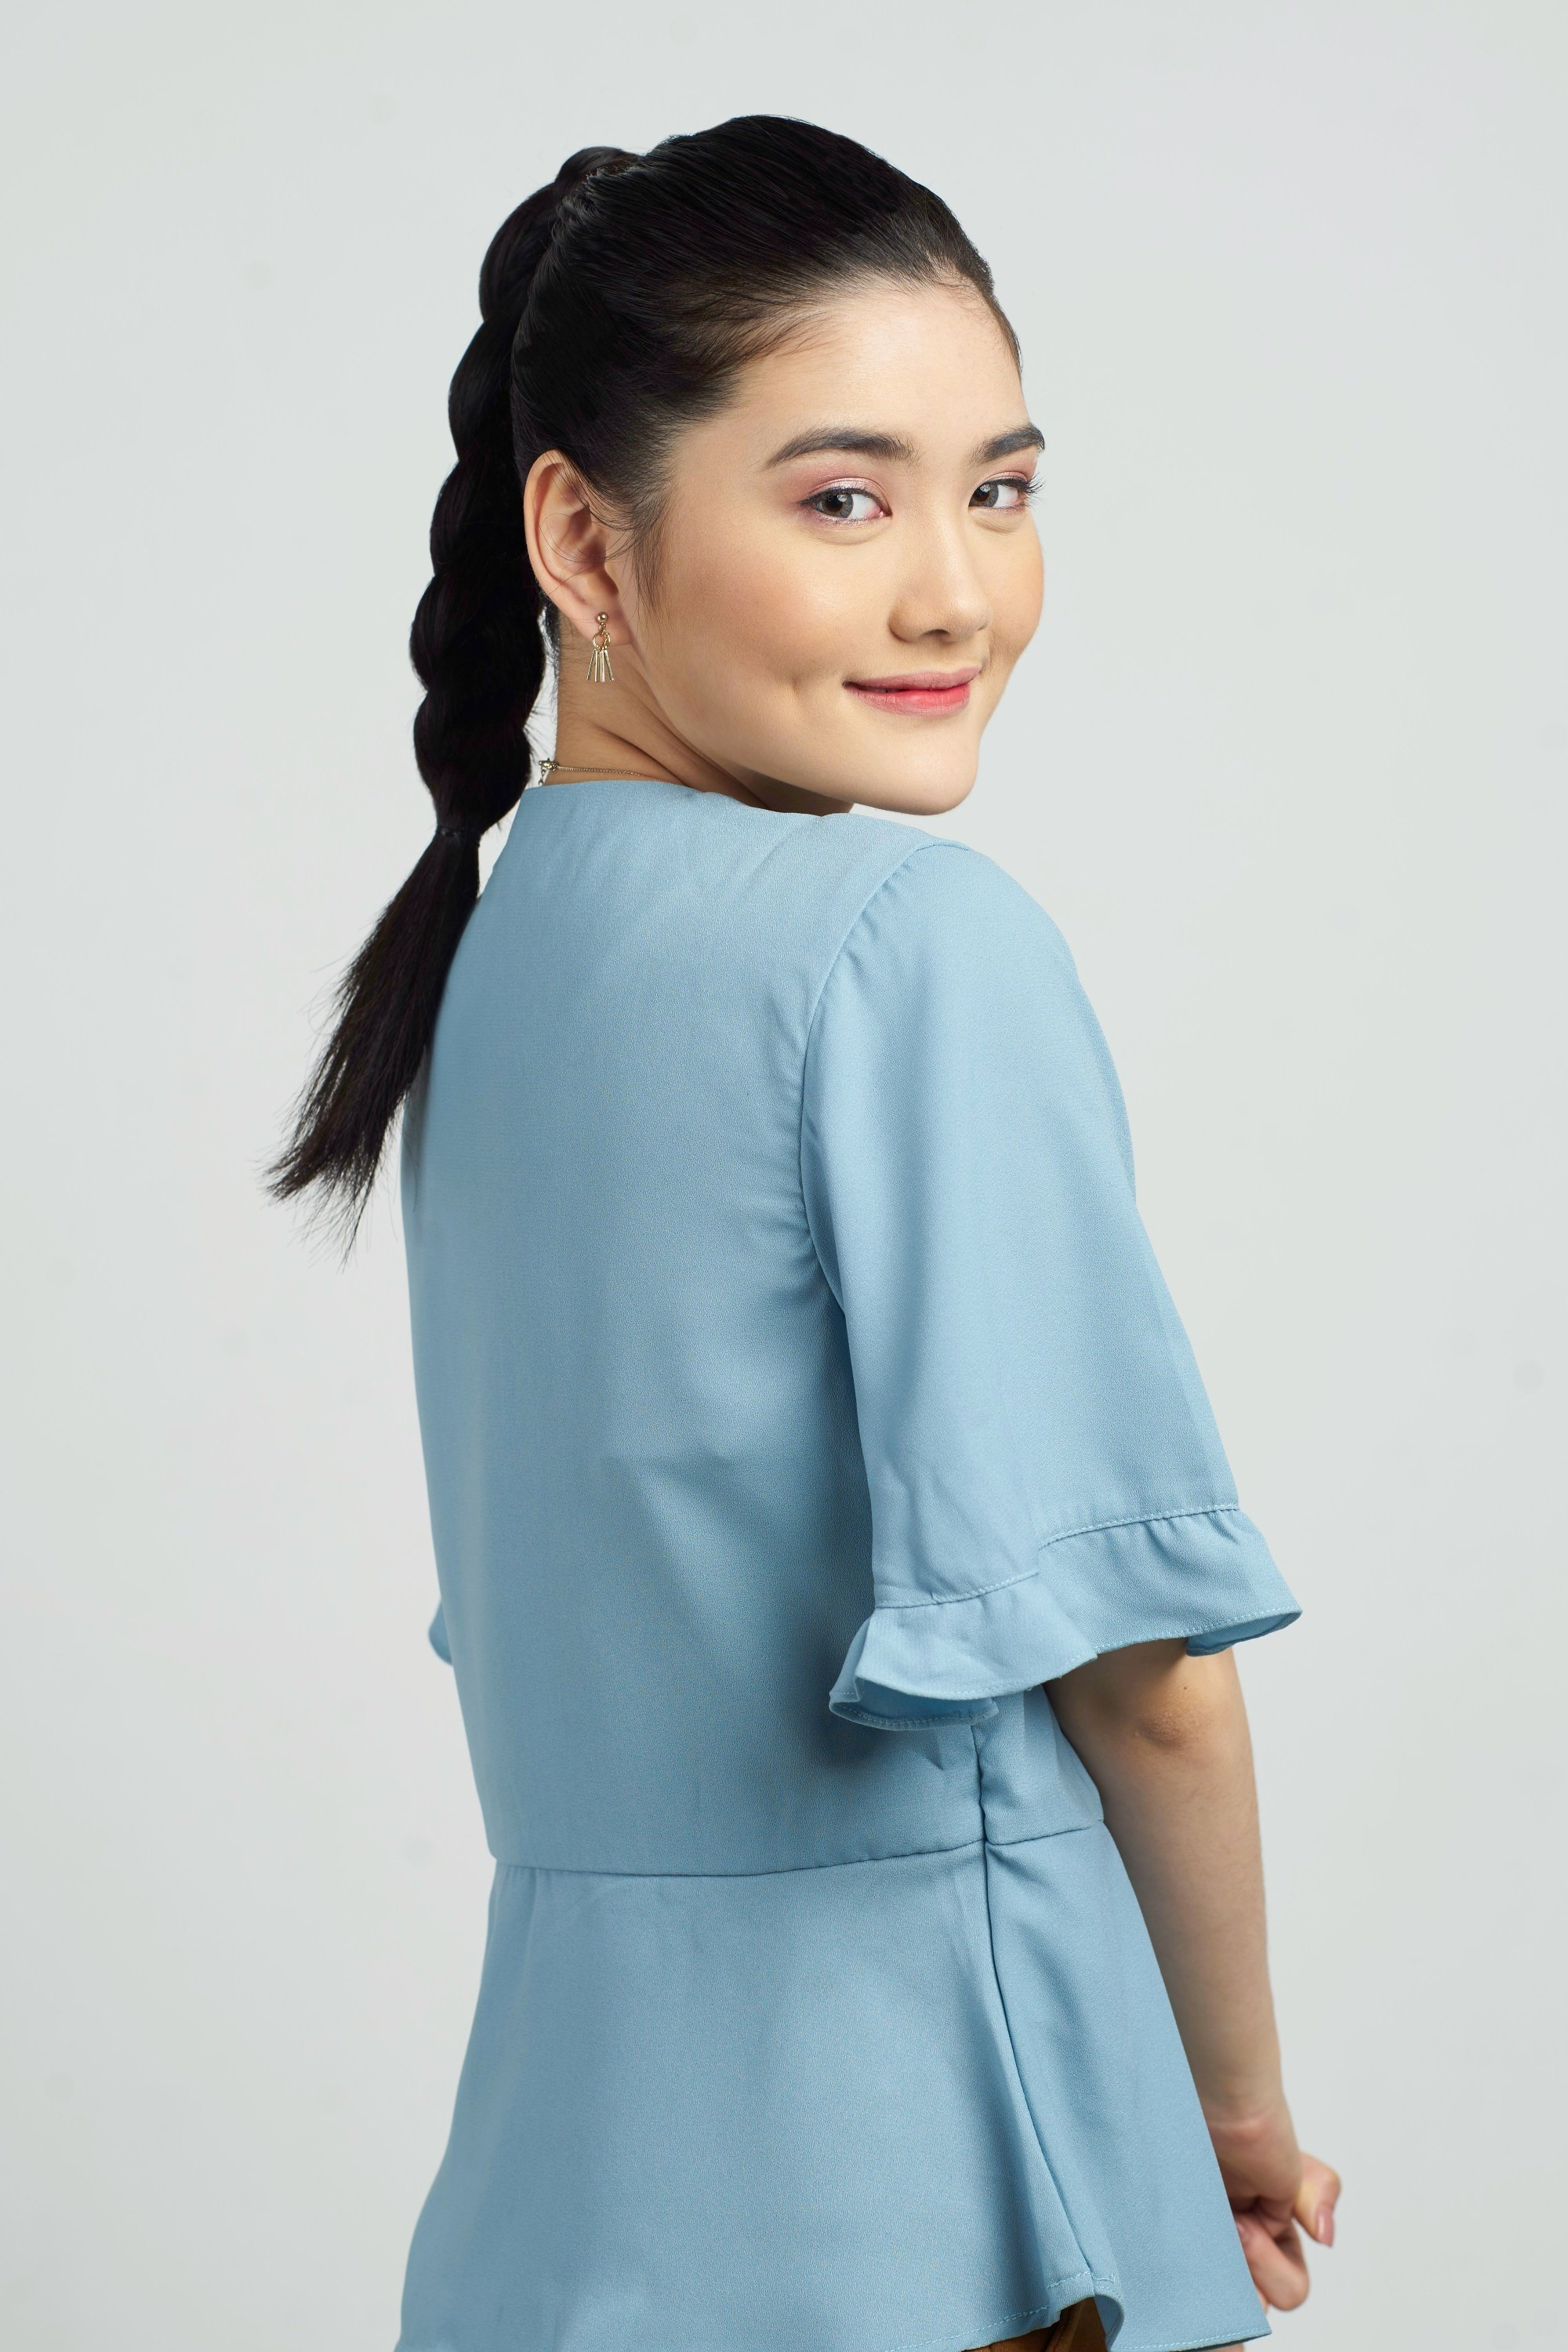 Blow dry your hair: Asian woman with long black hair in a braid ponytail wearing a blue blouse